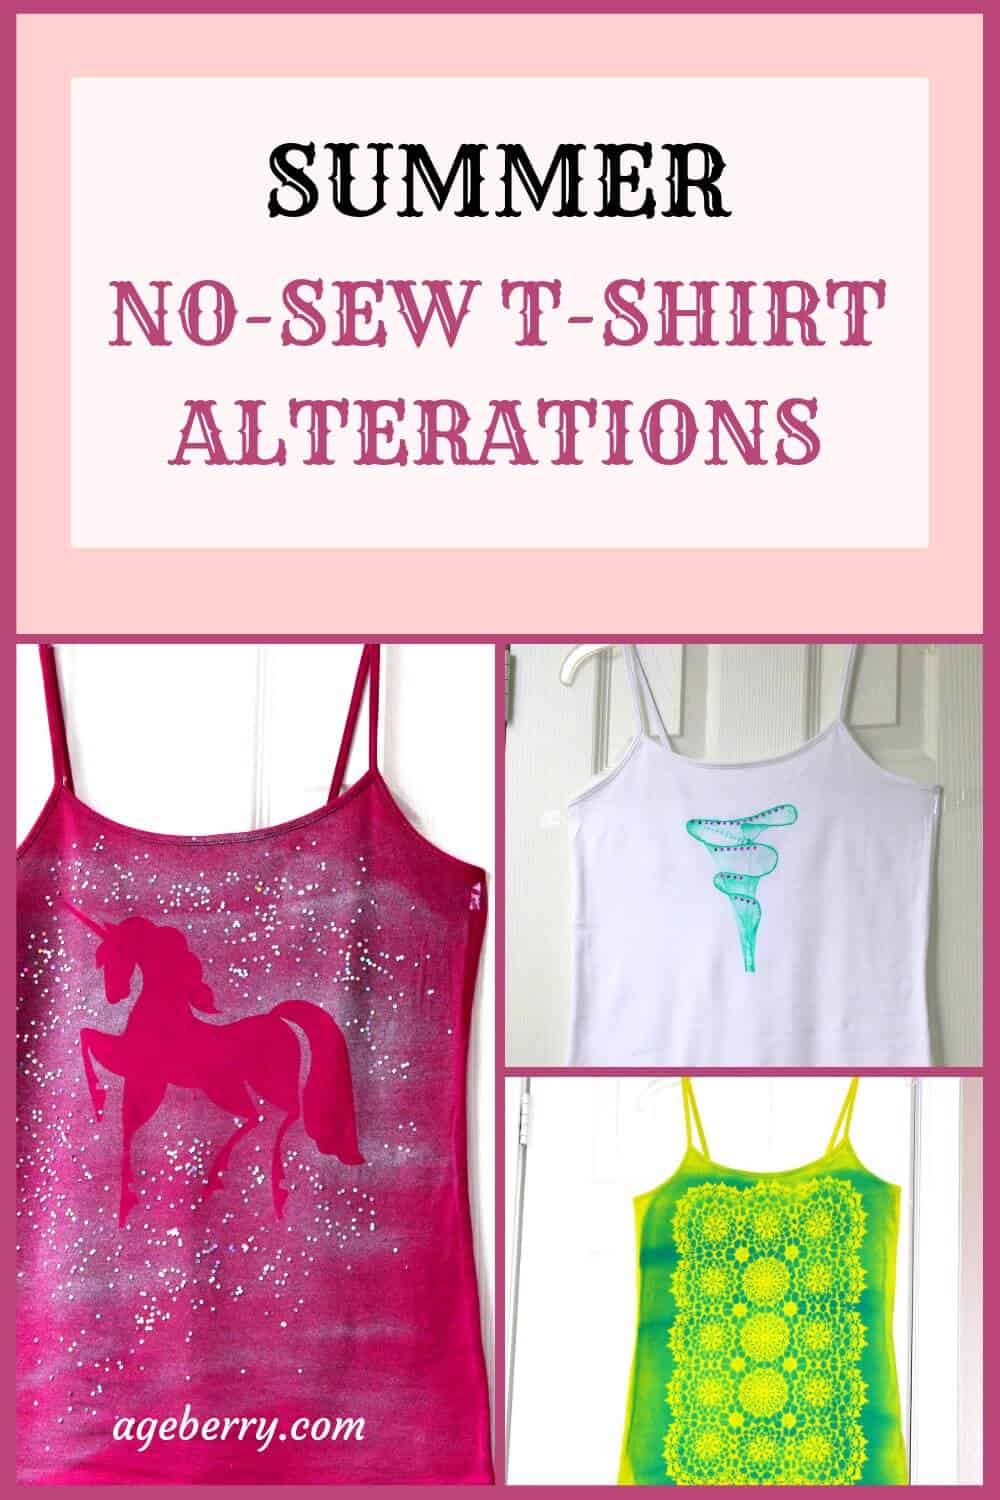 no-sew t-shirt alterations pin for Pinterest